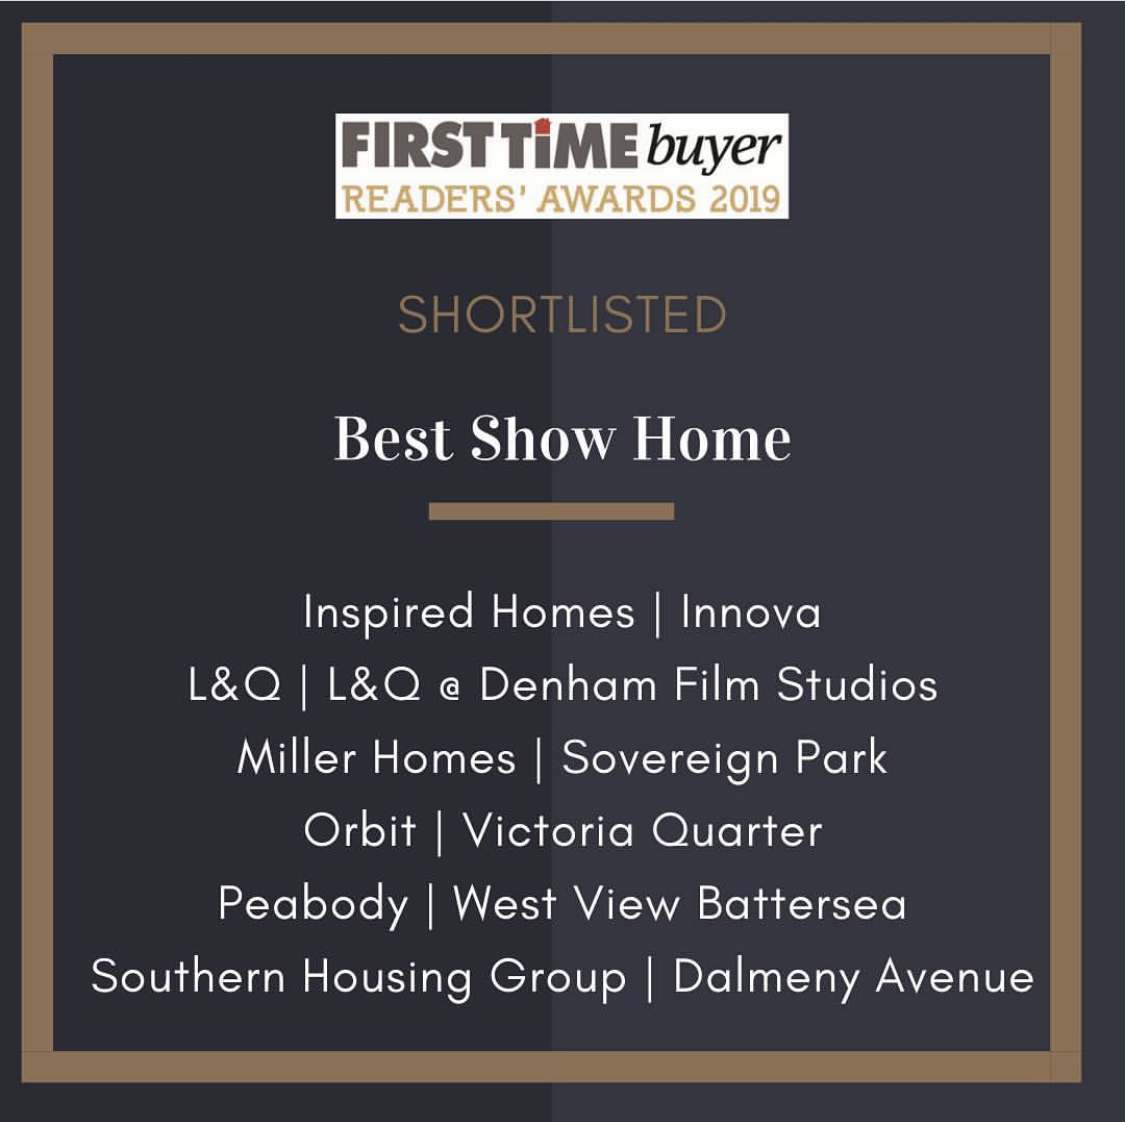 First Time Buyer Awards Hat Trick. - 5.2.19